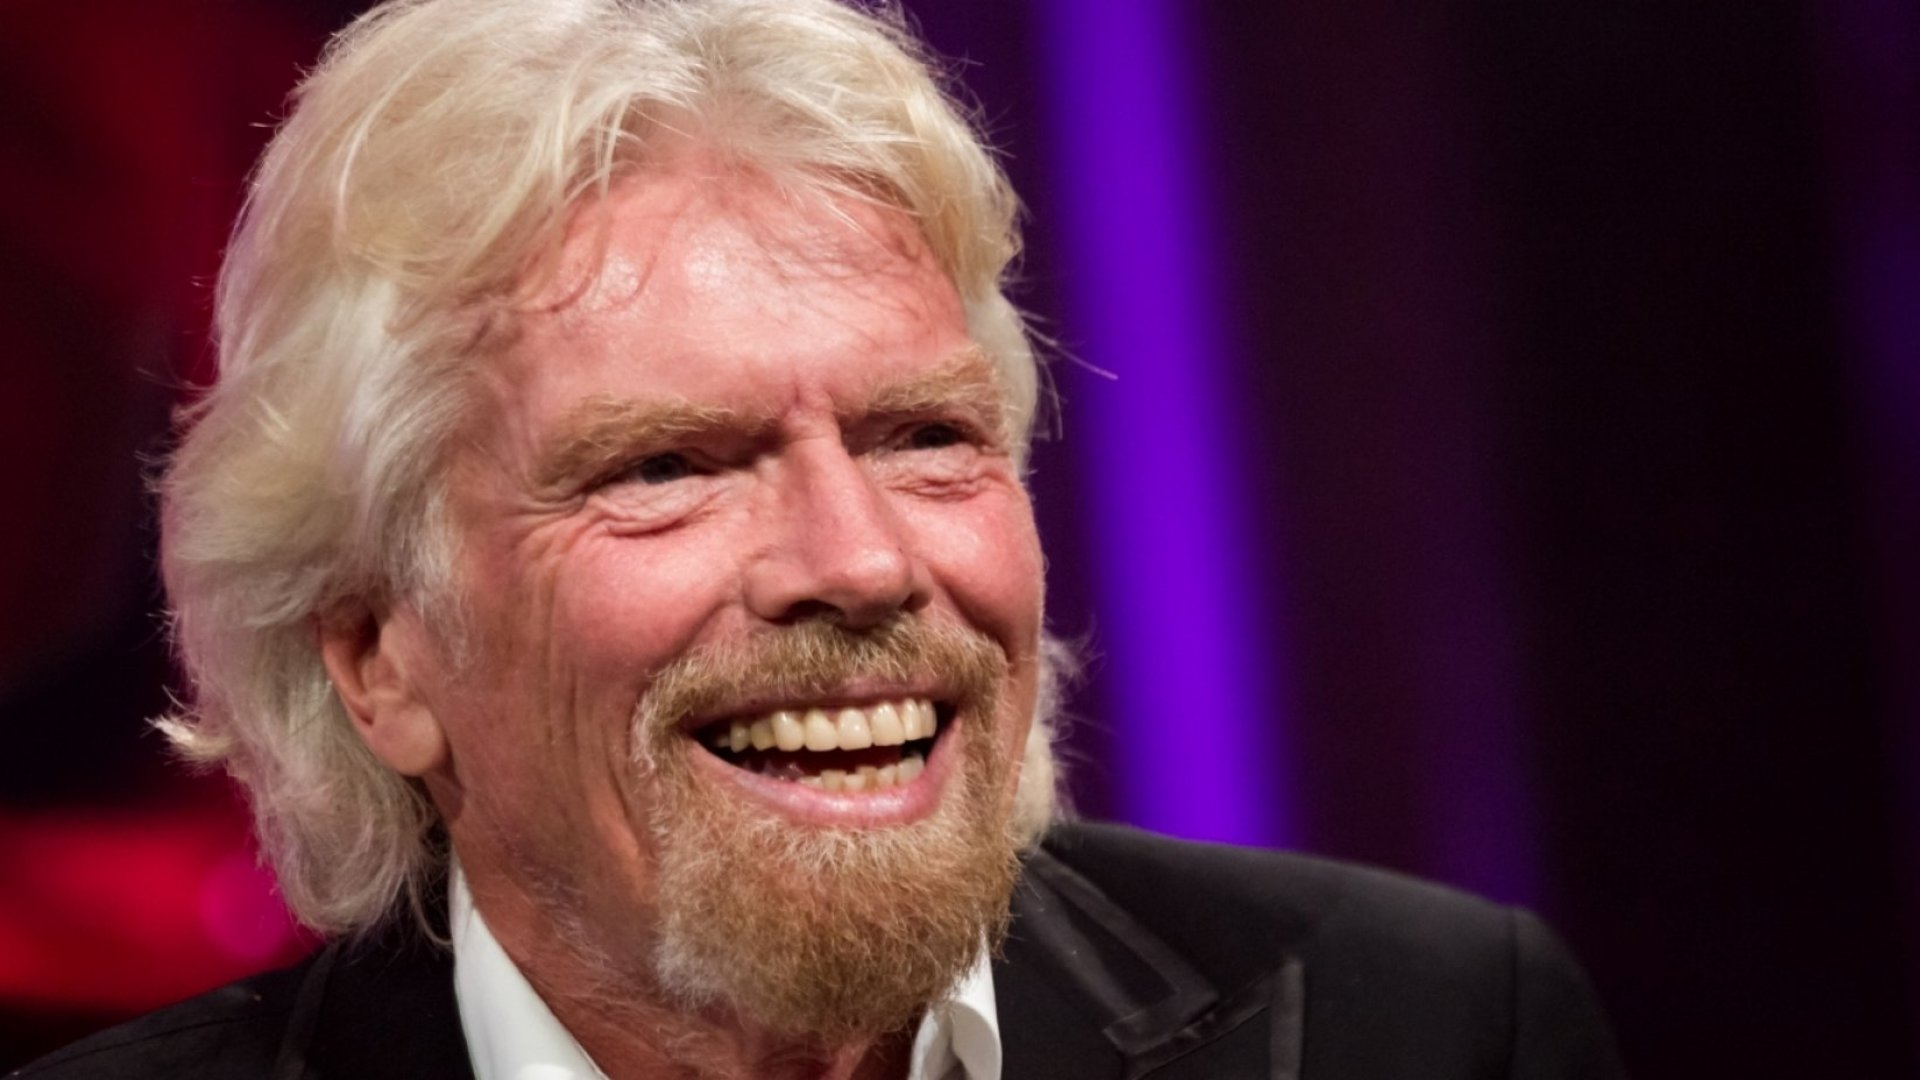 Richard Branson's Secrets on Public Speaking -You Need to Know